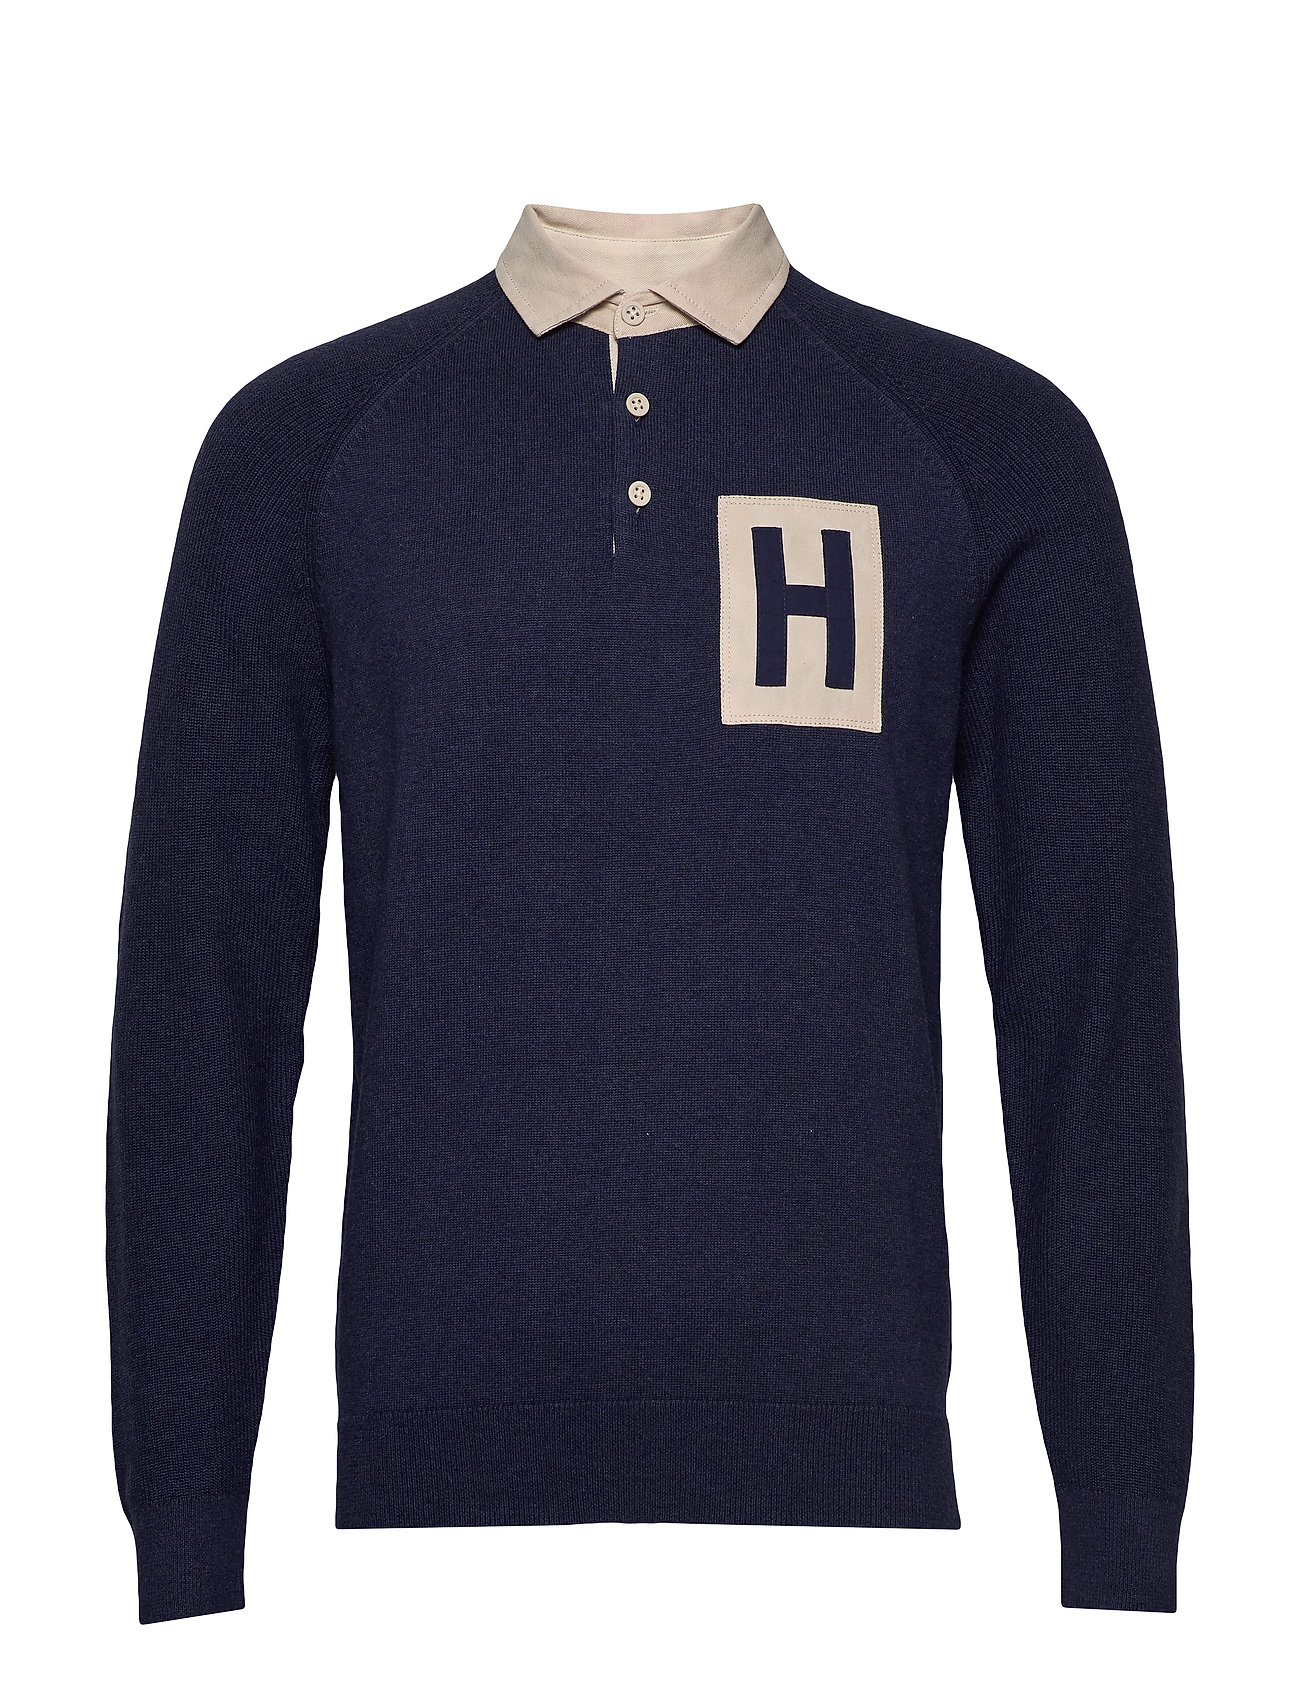 Hackett ARCHIVE KNITTED RUGBY - 595NAVY